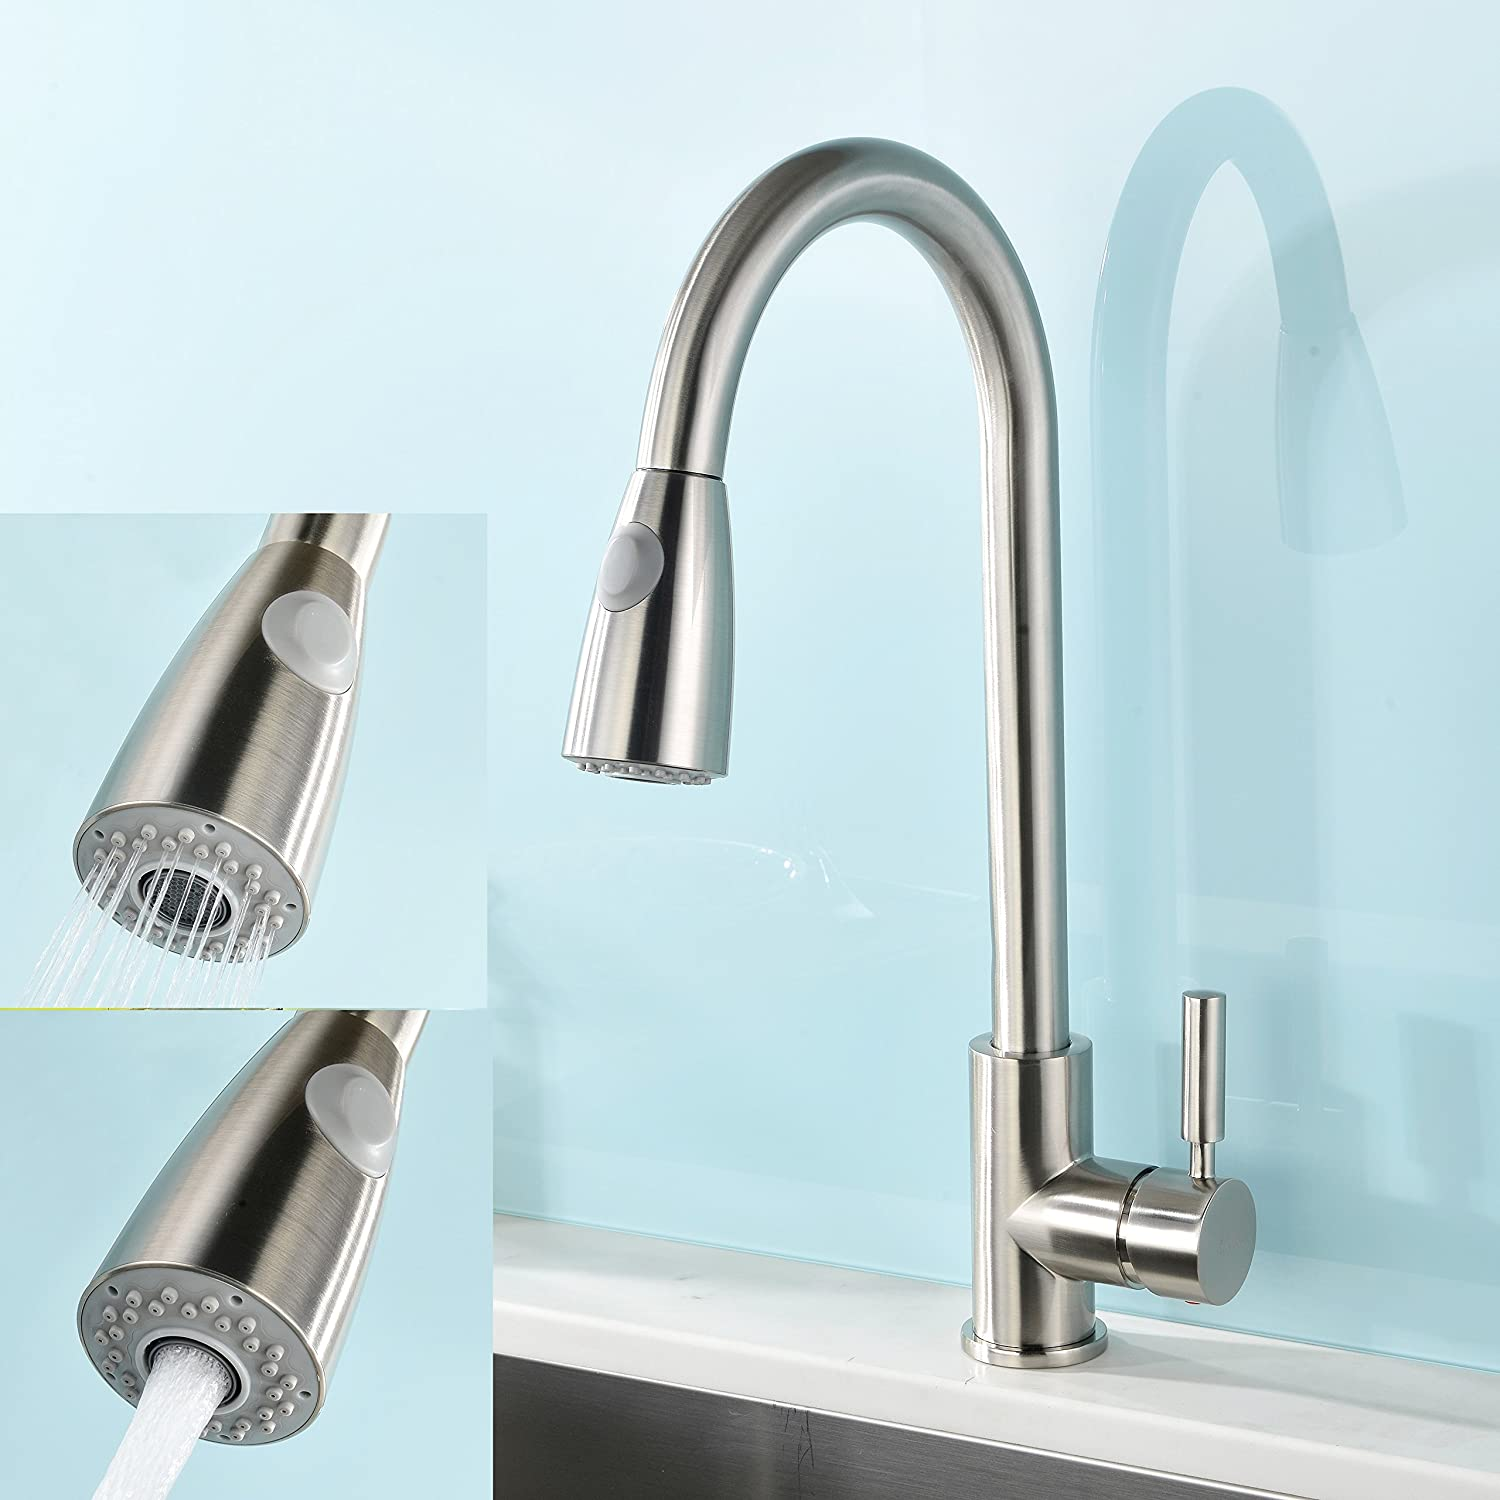 vapsint modern stainless steel single handle single hole pull out spray kitchen faucet brushed nickel - Kitchen Faucets